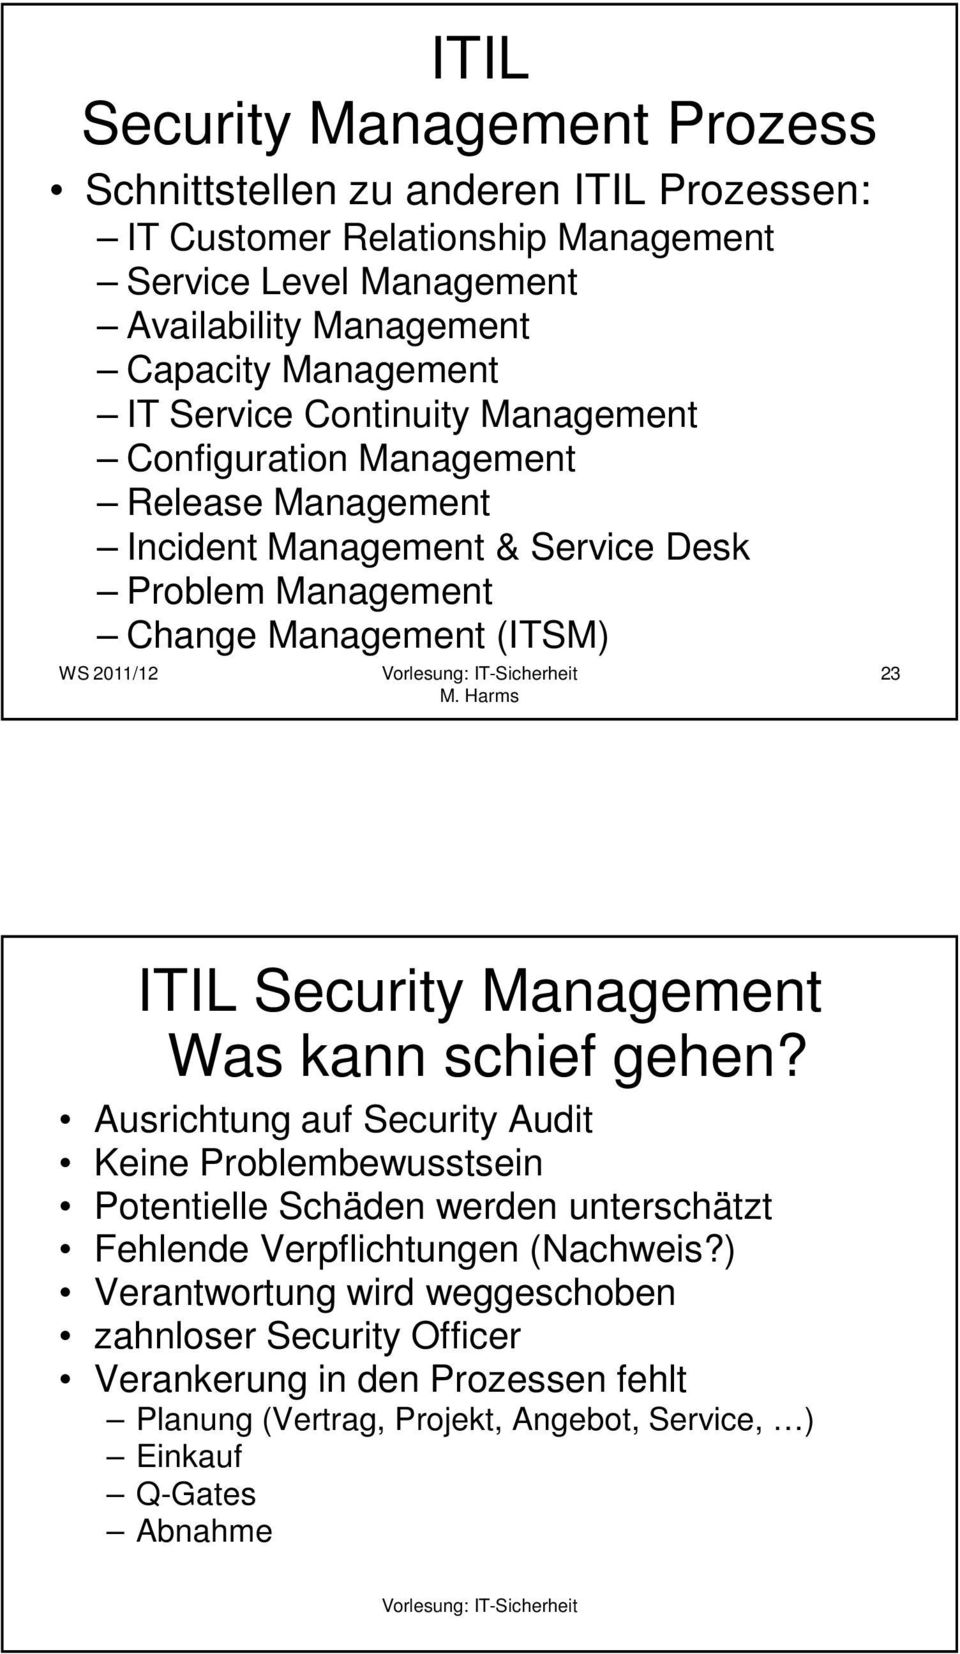 ITIL Security Management Was kann schief gehen?